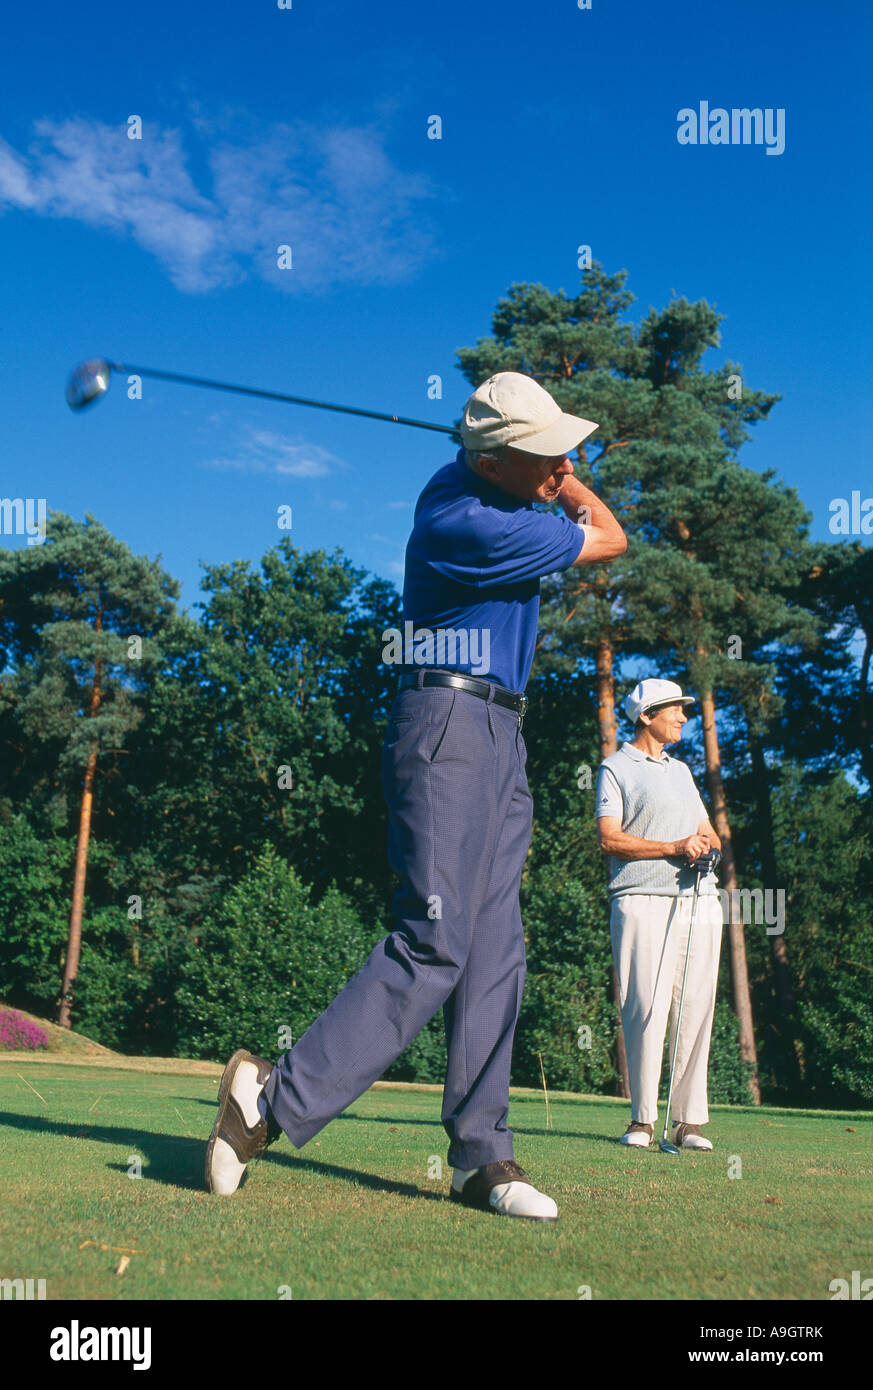 golfers model released teeing off Surrey England UK - Stock Image